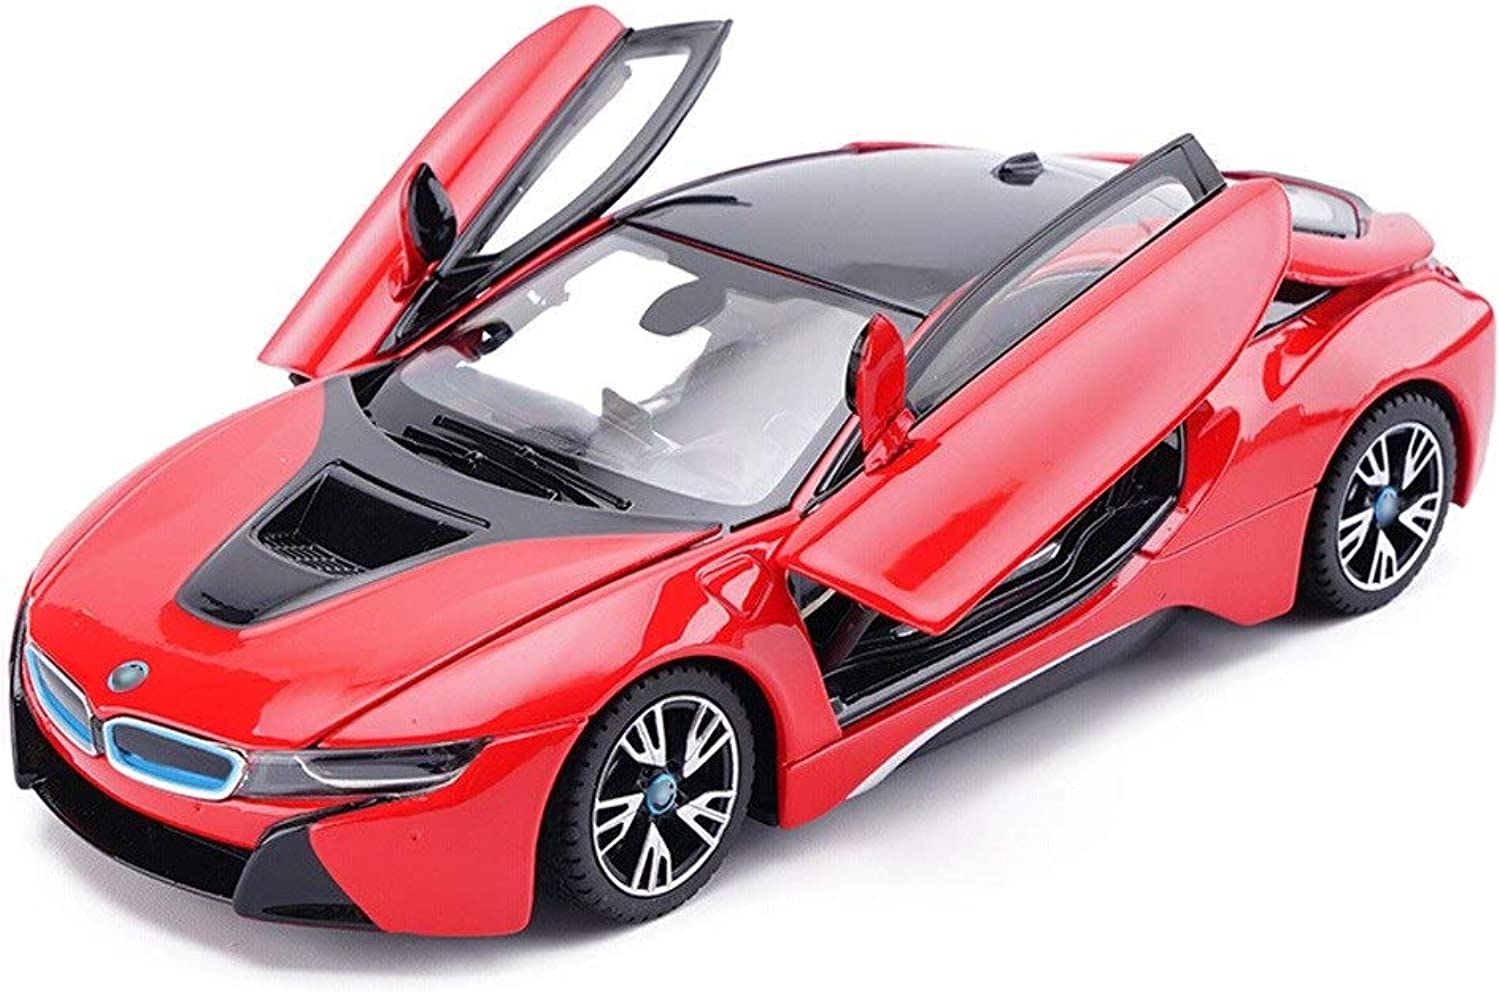 Model car Car Model Sports Car Model 1 24 Scale Model Alloy Model Diecasting Model Toy Car Model Collection Decorative Decoration Gift (color   Red)